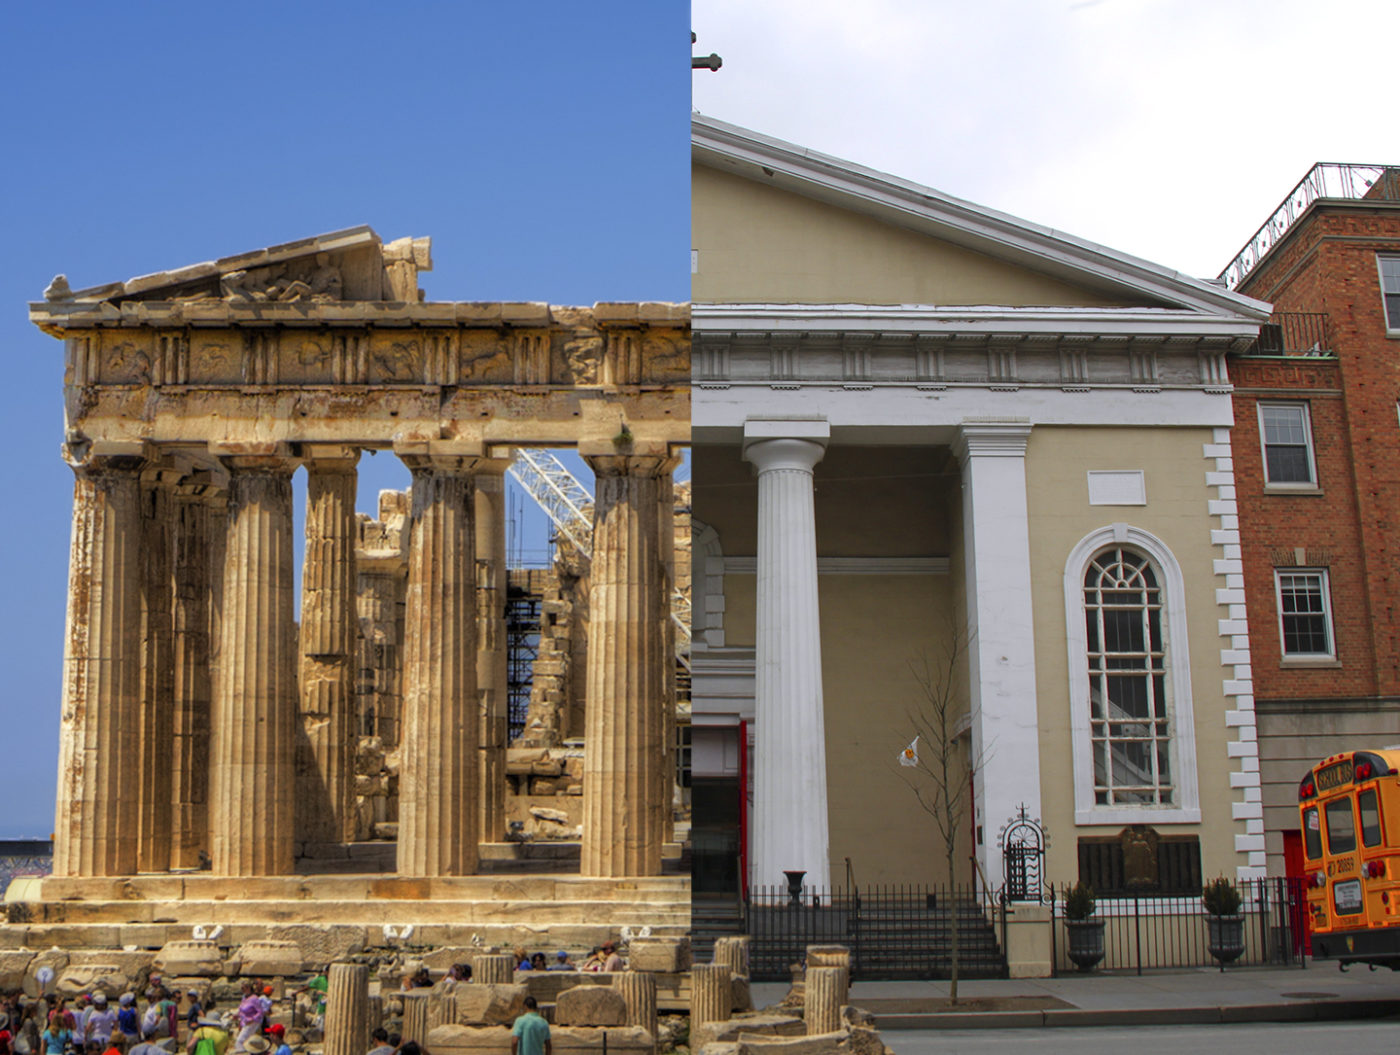 The Parthenon in Greece and St Josephs Church, NYC